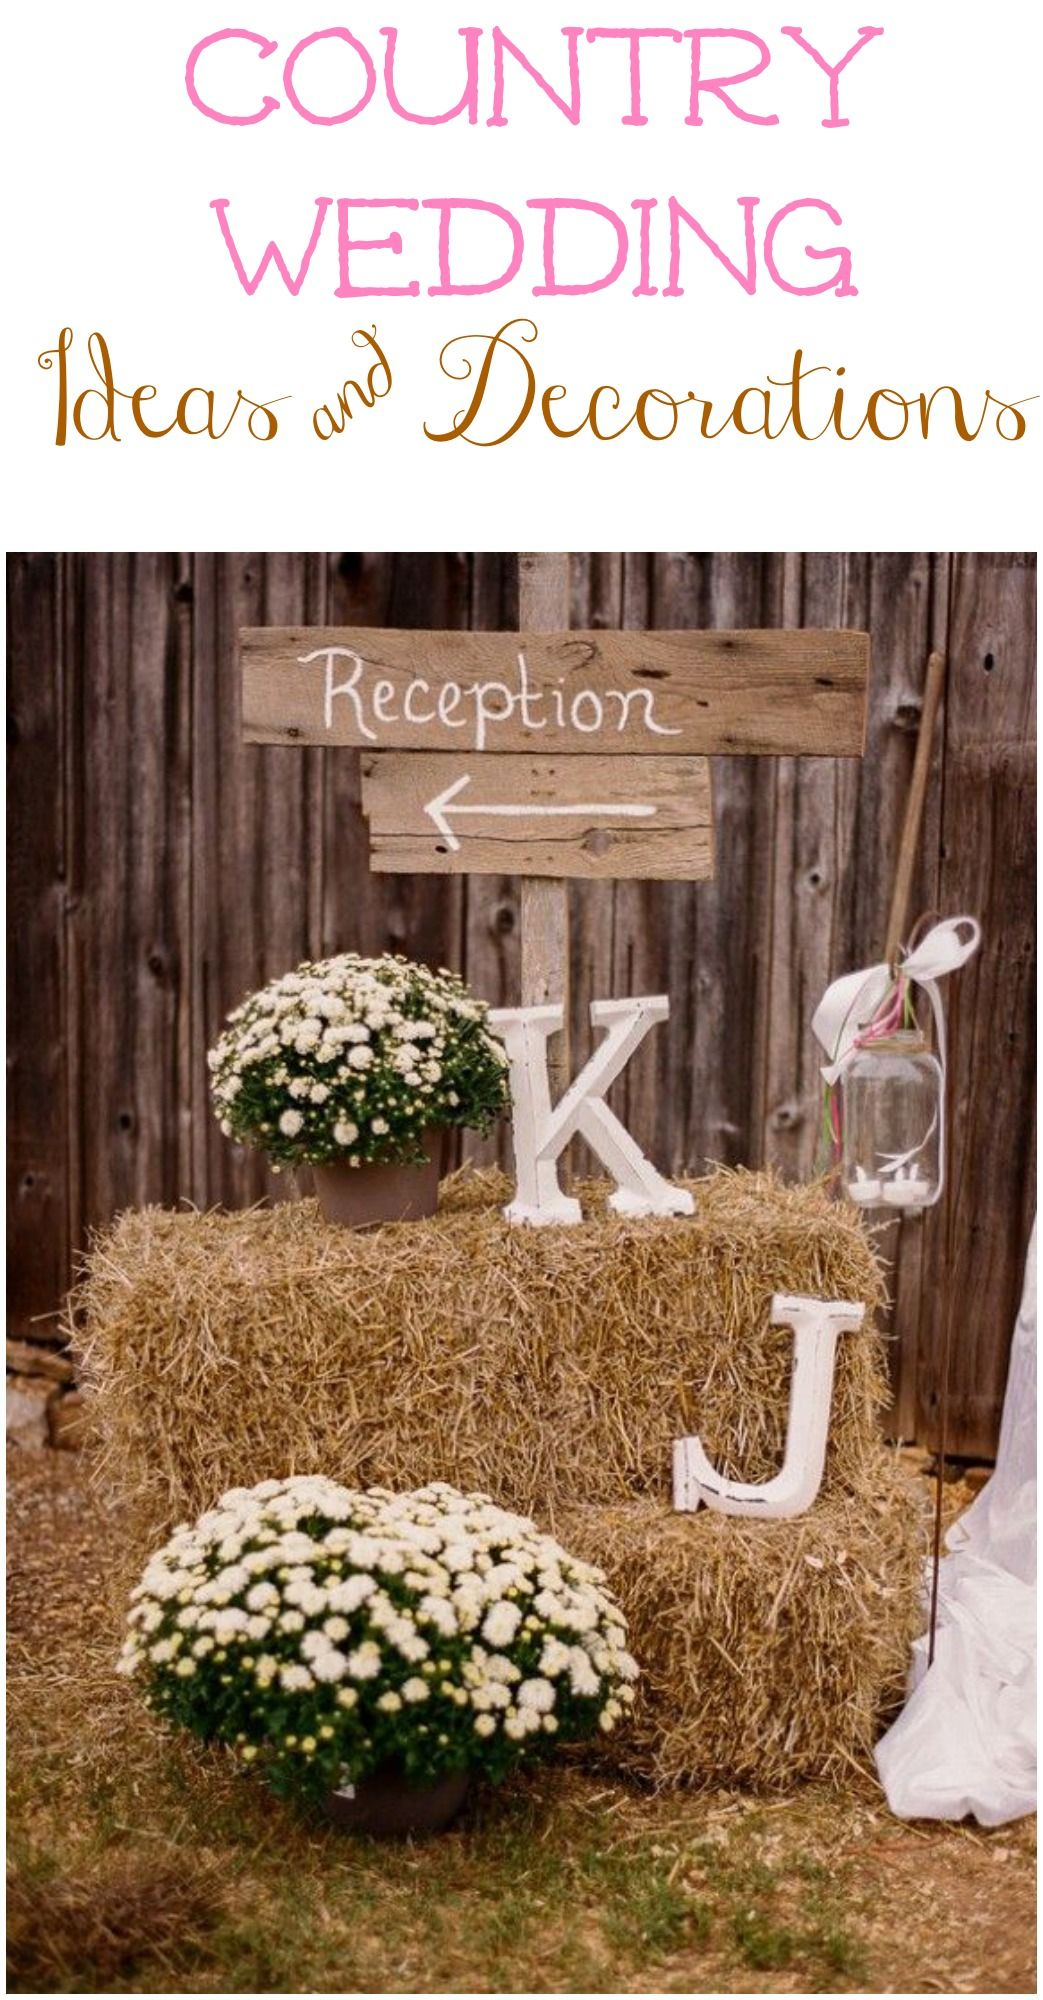 Eclectic Alabama Barn Wedding eclectic alabama barn wedding receptions wedding and